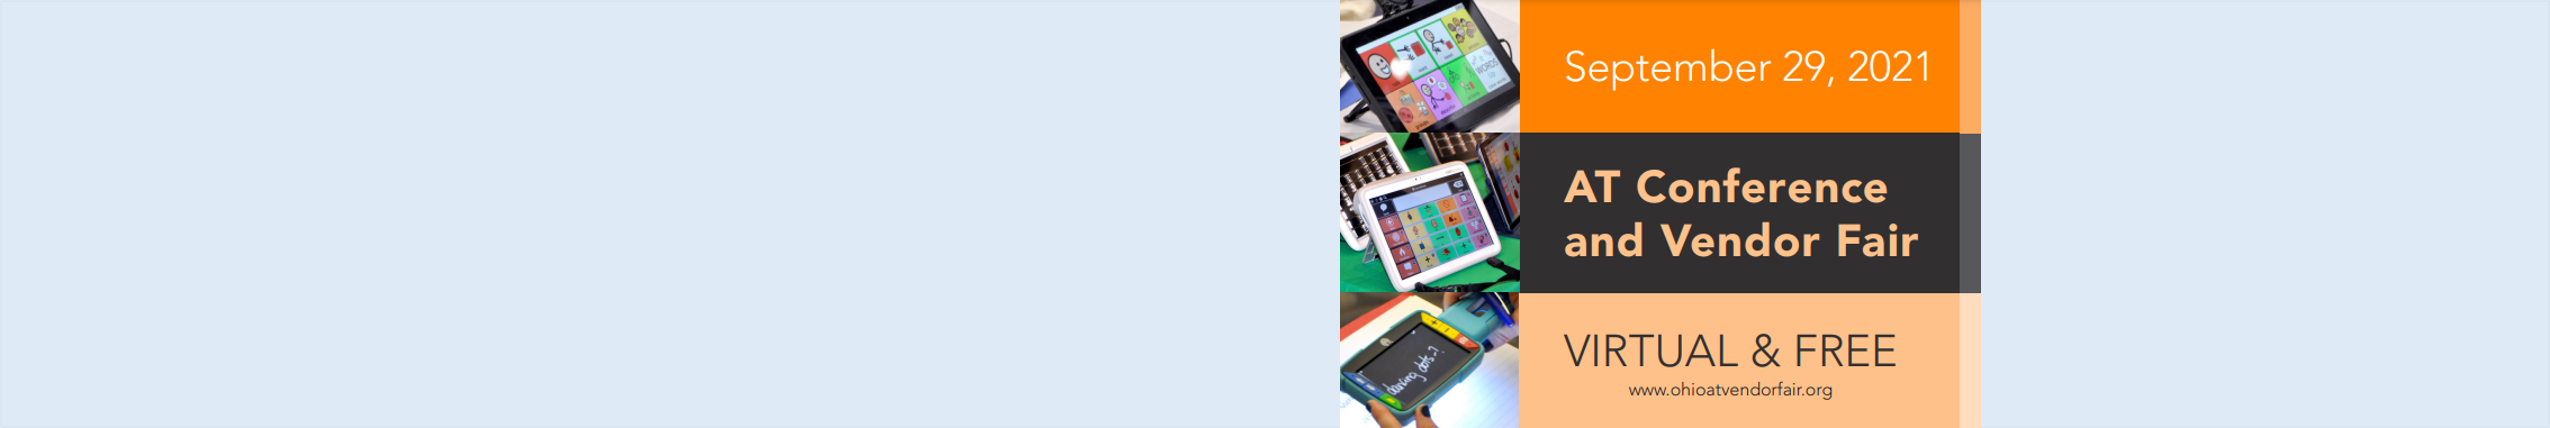 Photos of Assistive Technology Devices